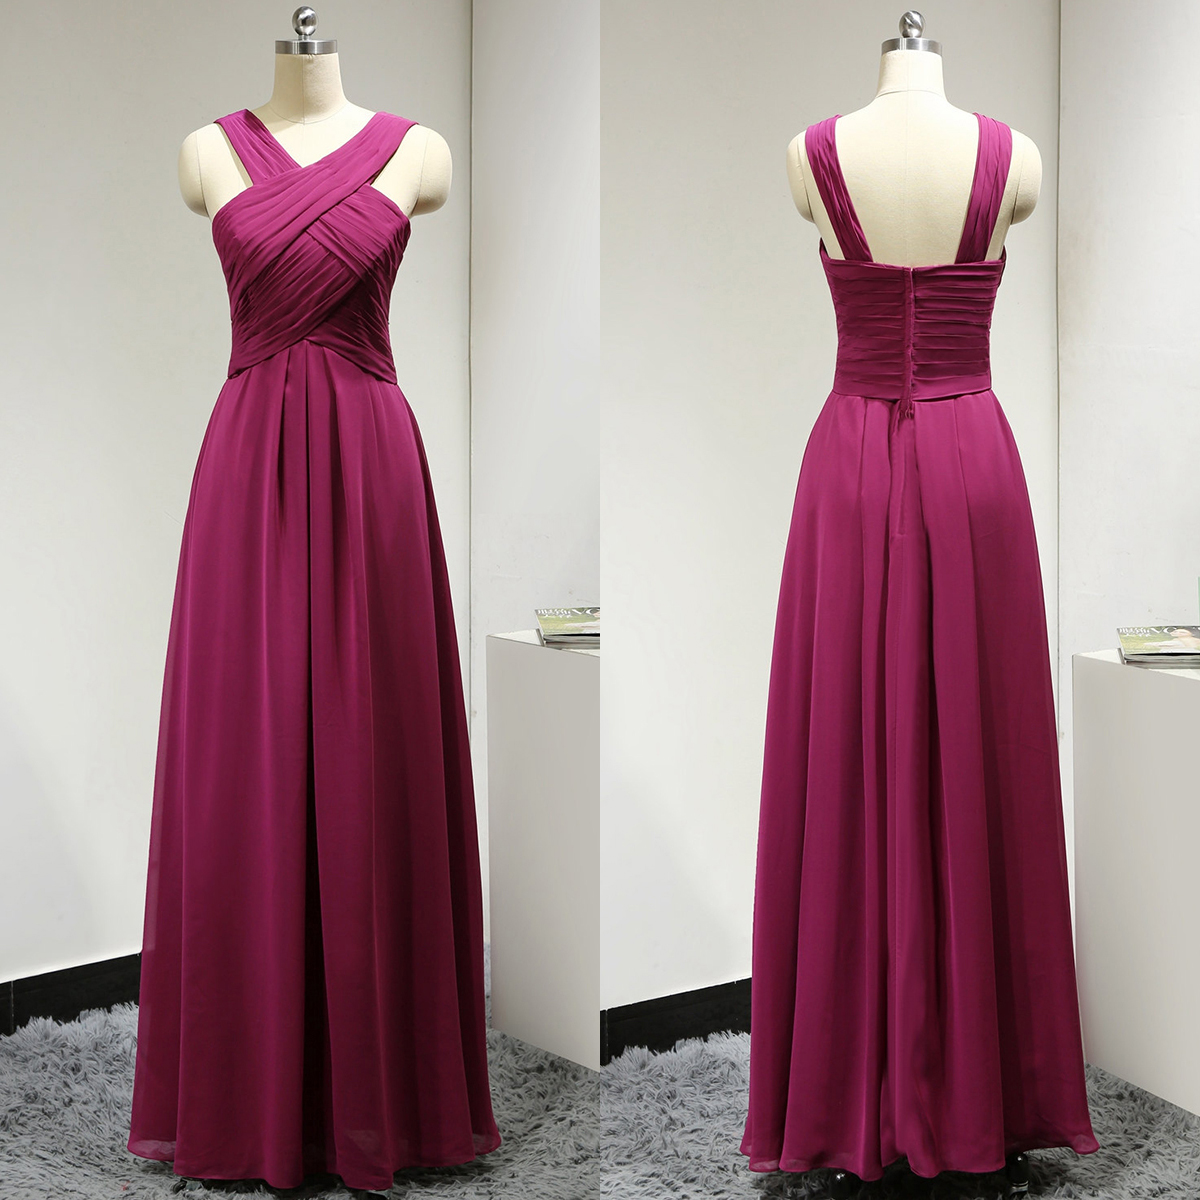 Halter A line Bridesmaid Dress with Ruching Detail V neck